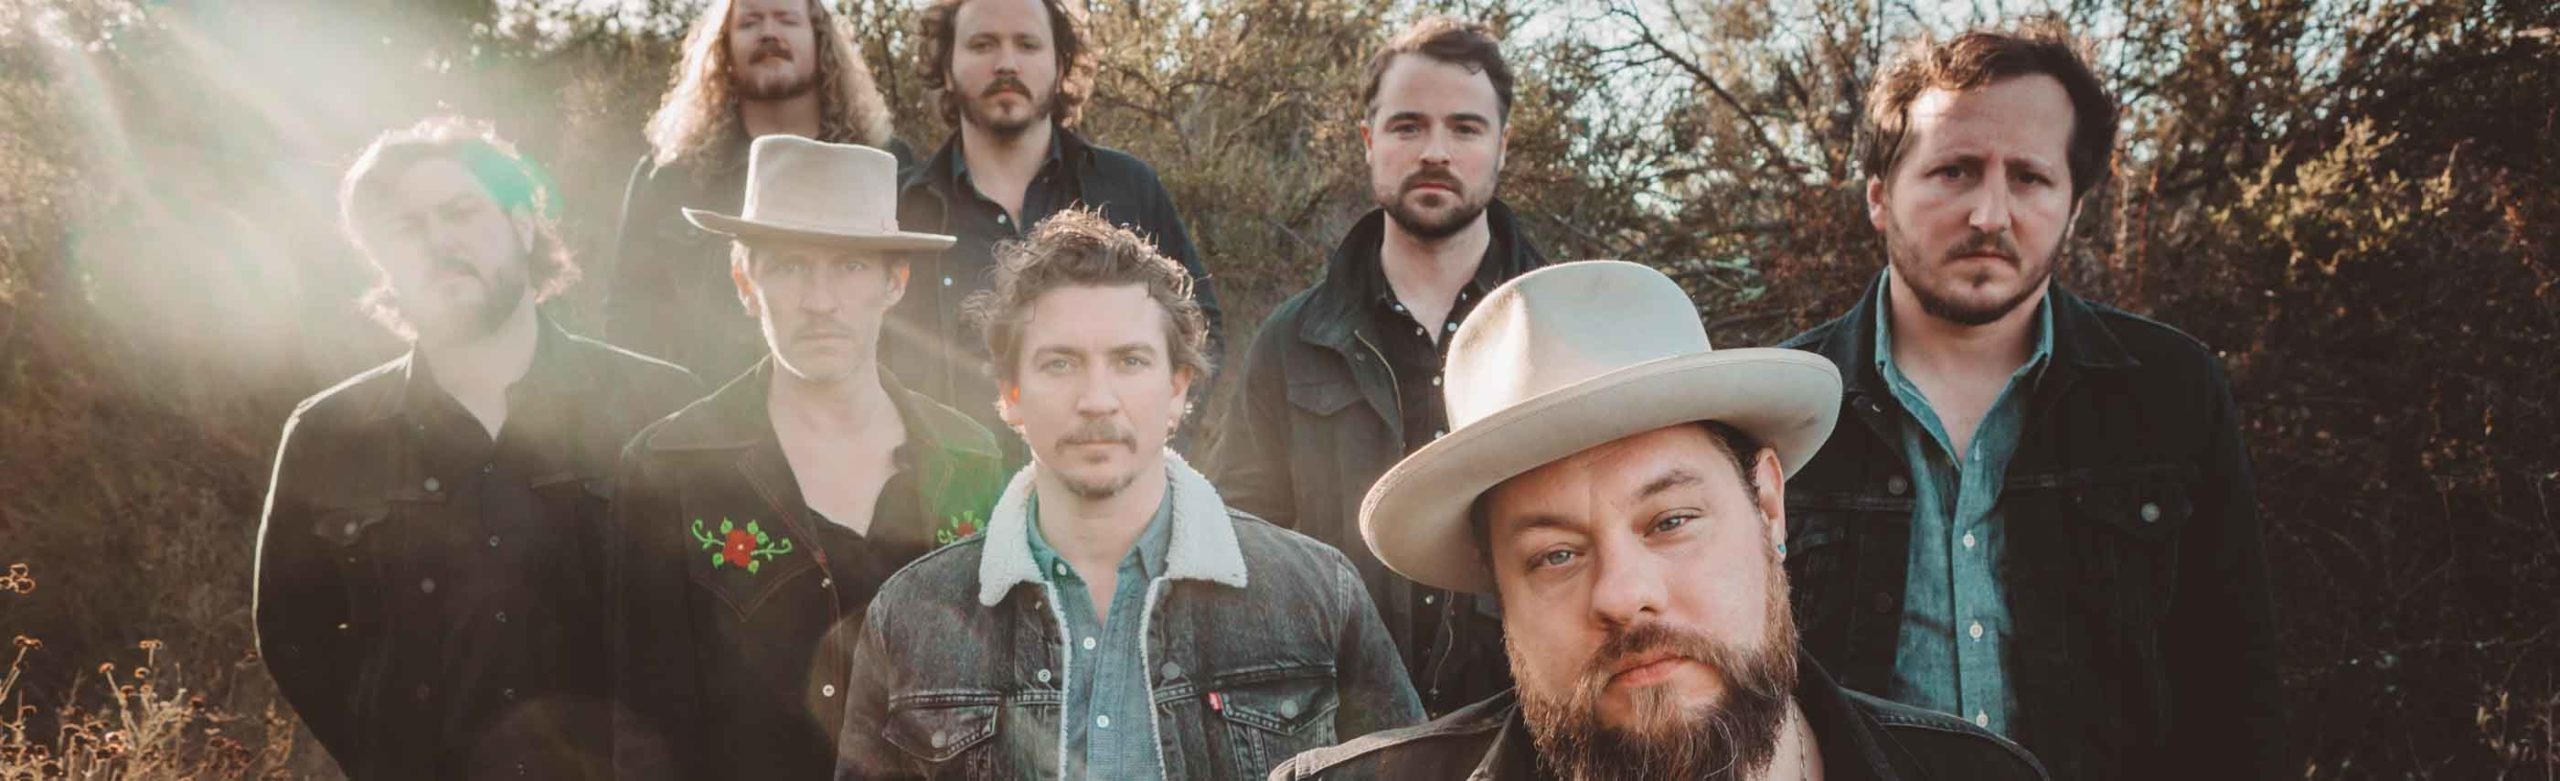 Album/Ticket Bundle: Nathaniel Rateliff Free Digital Download Image